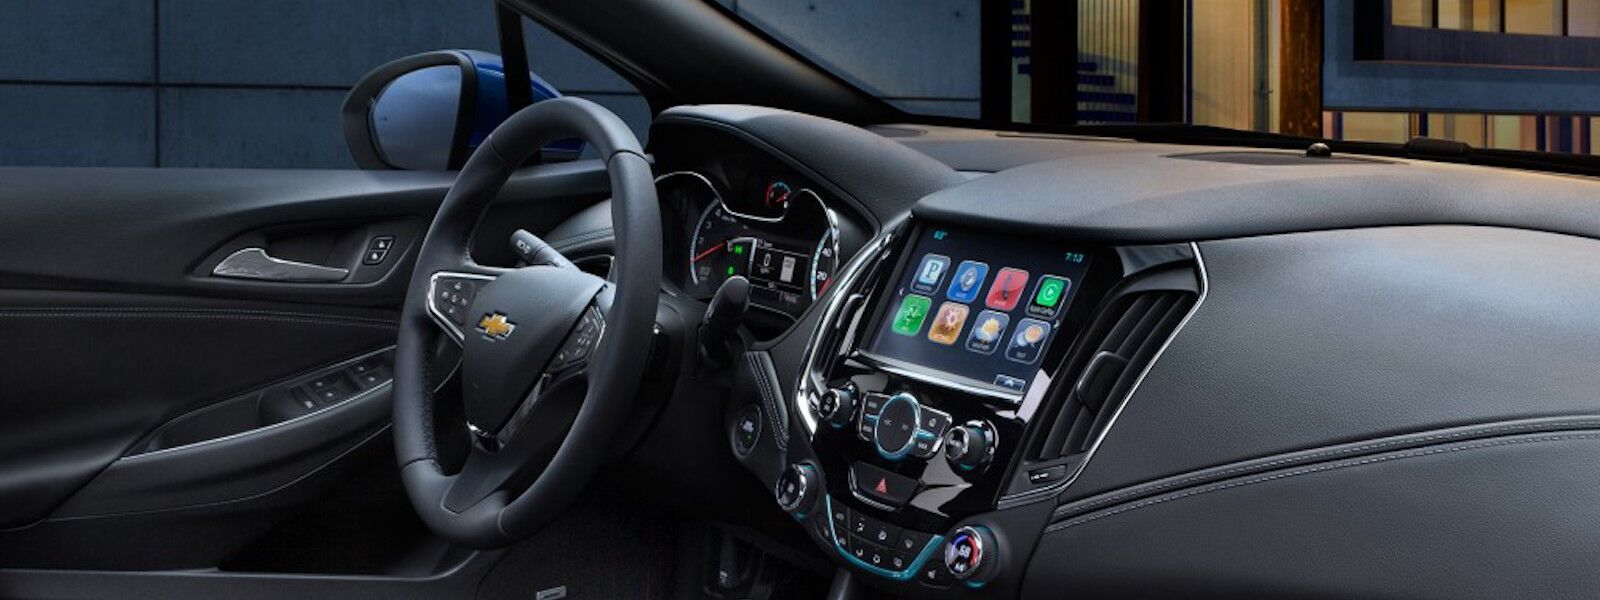 2016 Chevy Cruze Technology